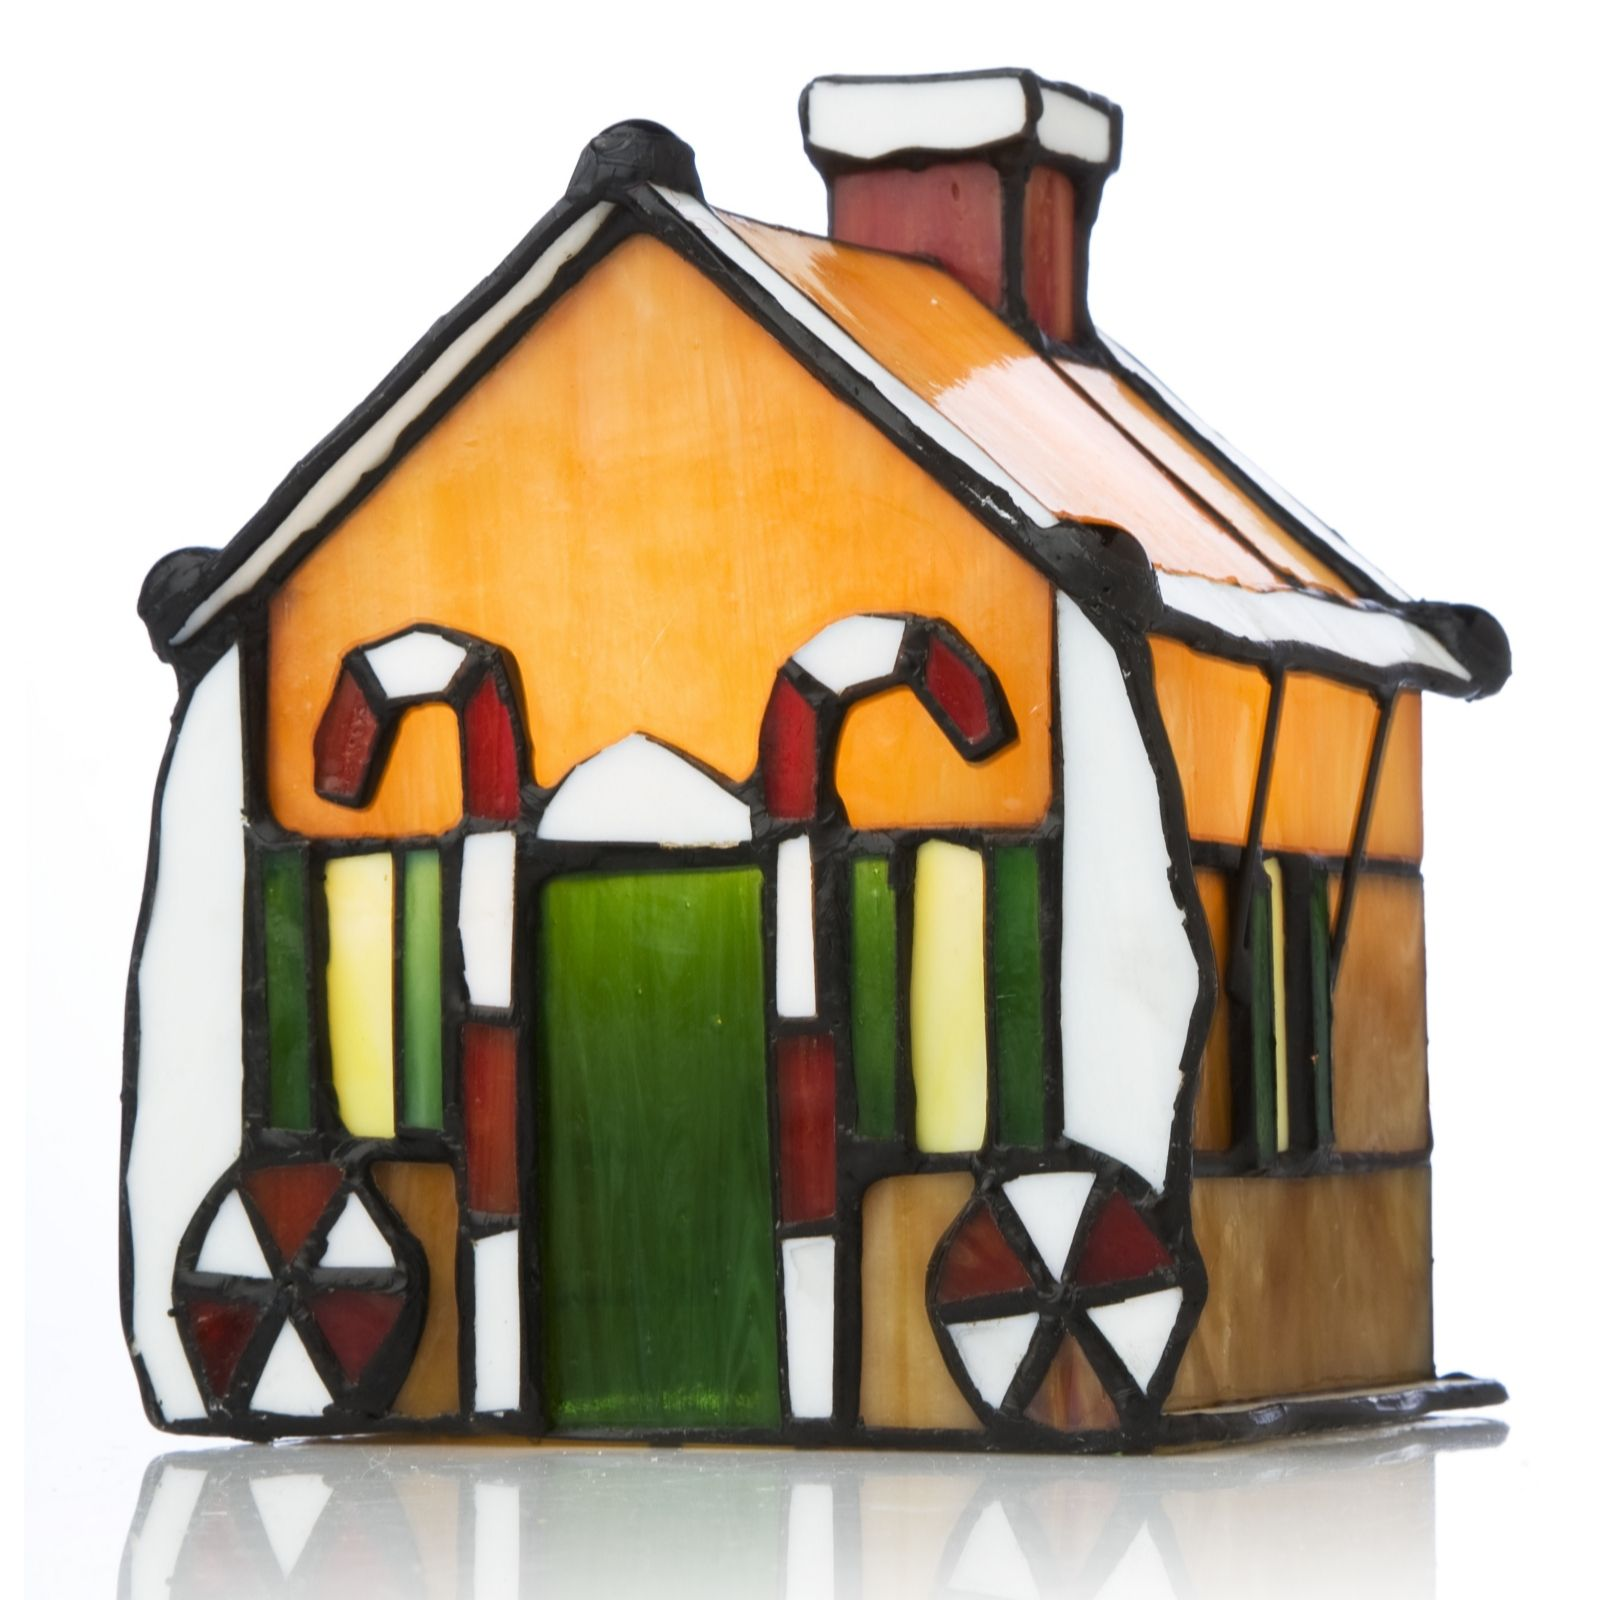 Tiffany Style Handcrafted Ginger Bread House Novelty Lamp   QVC UK